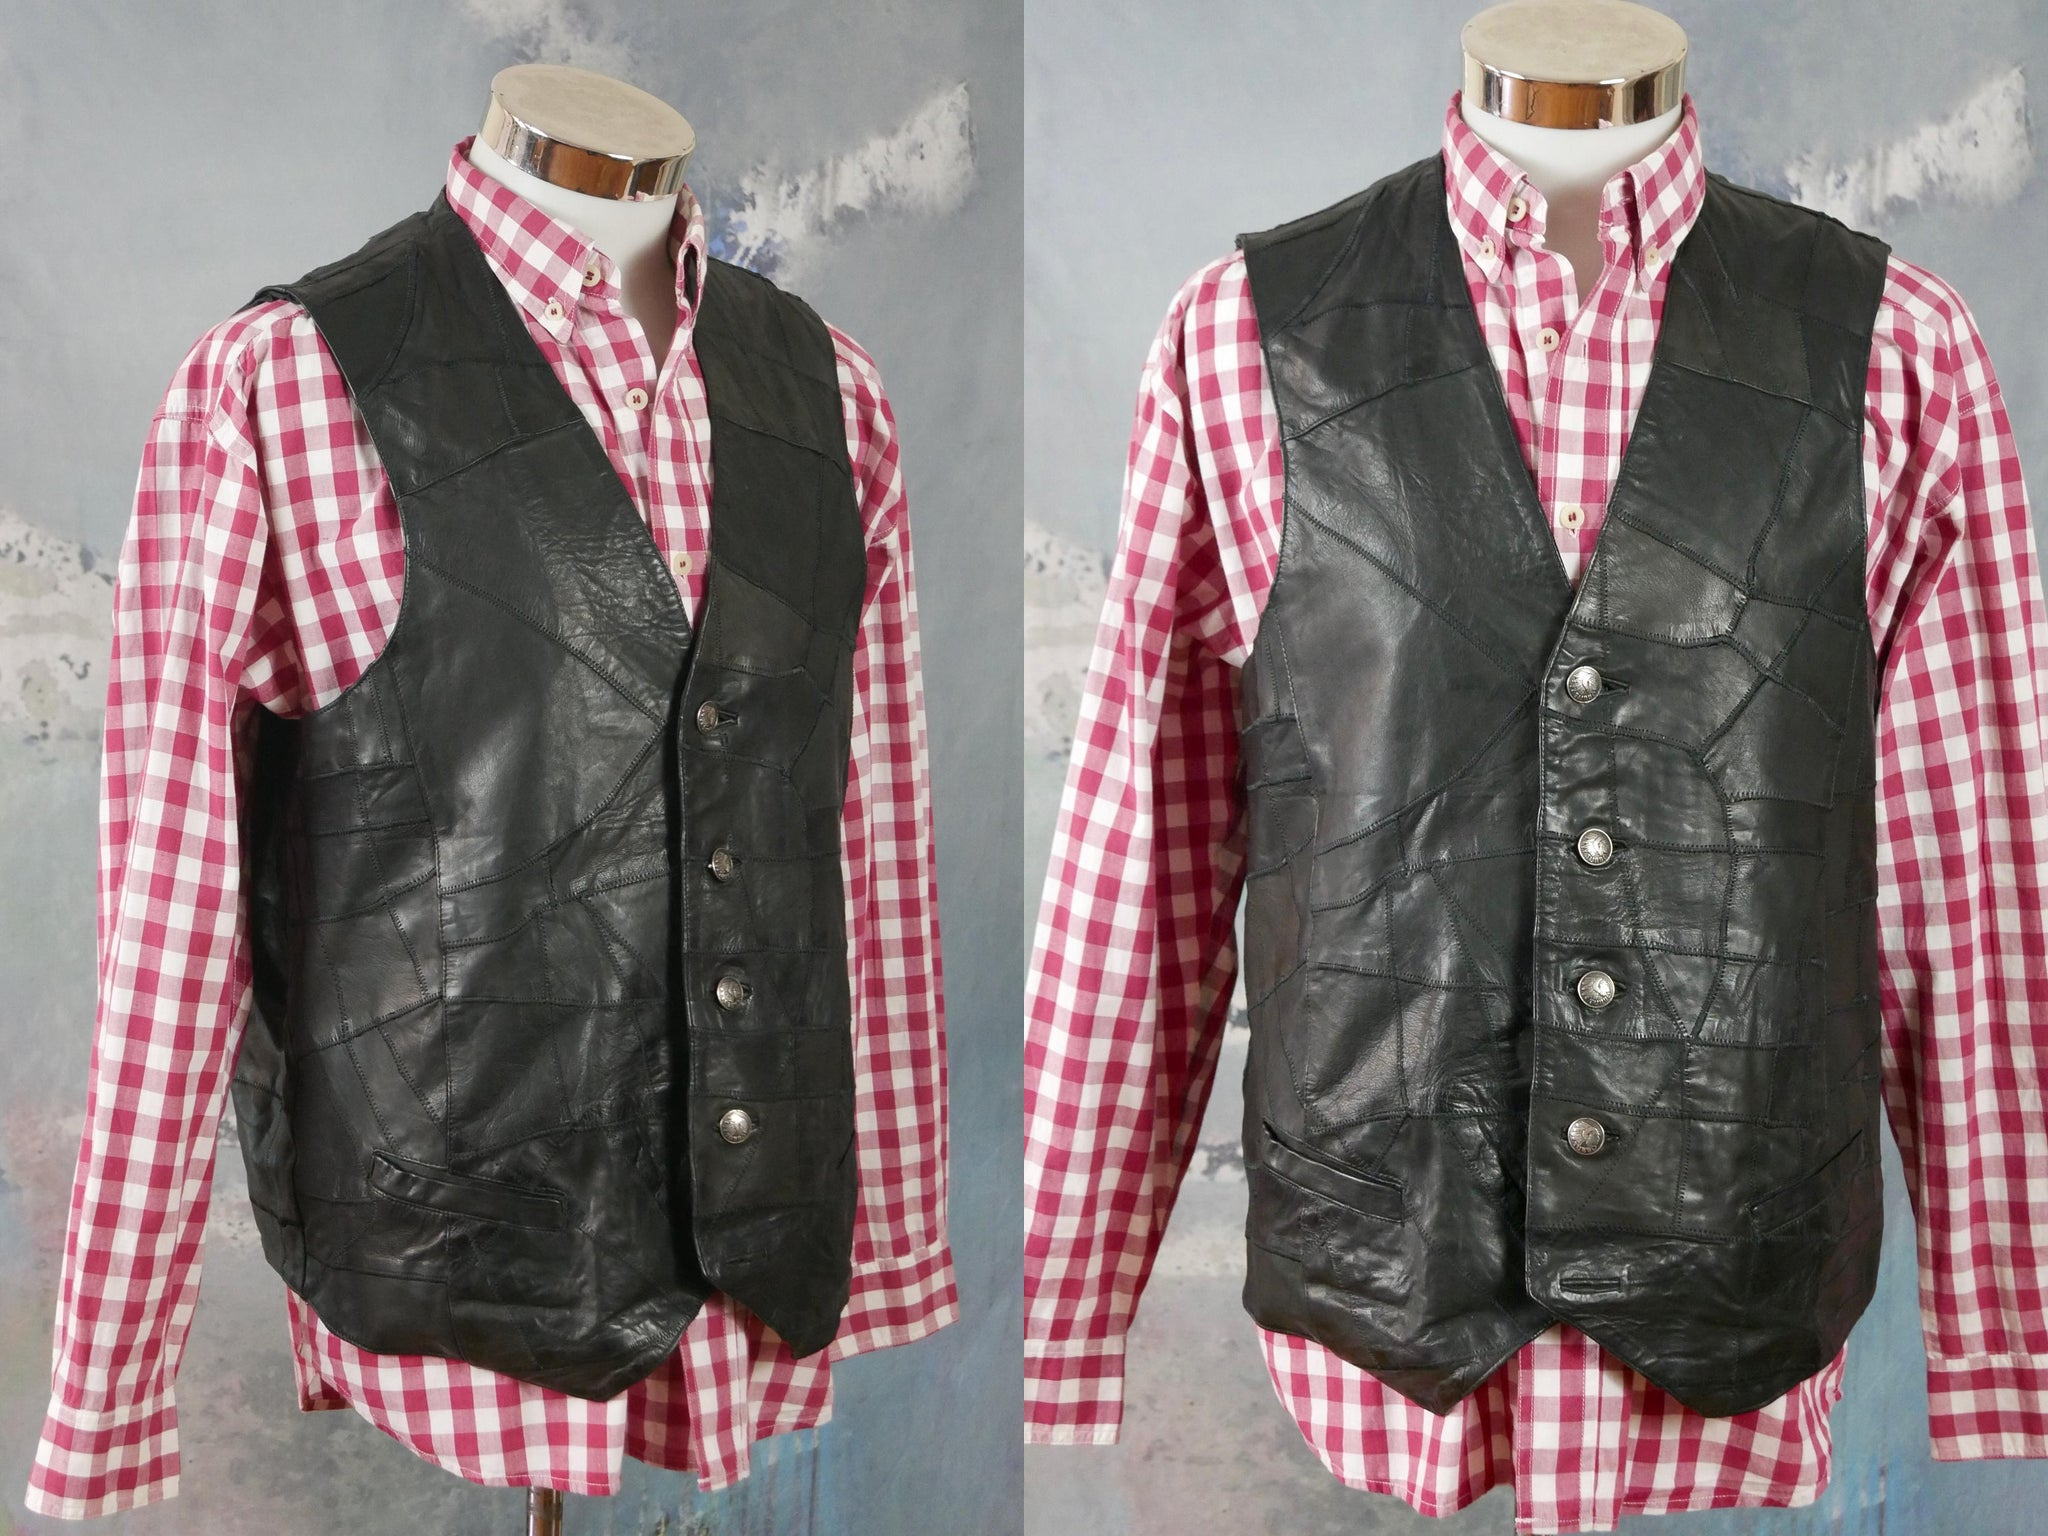 1990s Black Leather Vest, European Vintage Patchwork Leather Pointed Front Waistcoat: XL (42 to 44 US/UK) - DownShifting Vintage Menswear